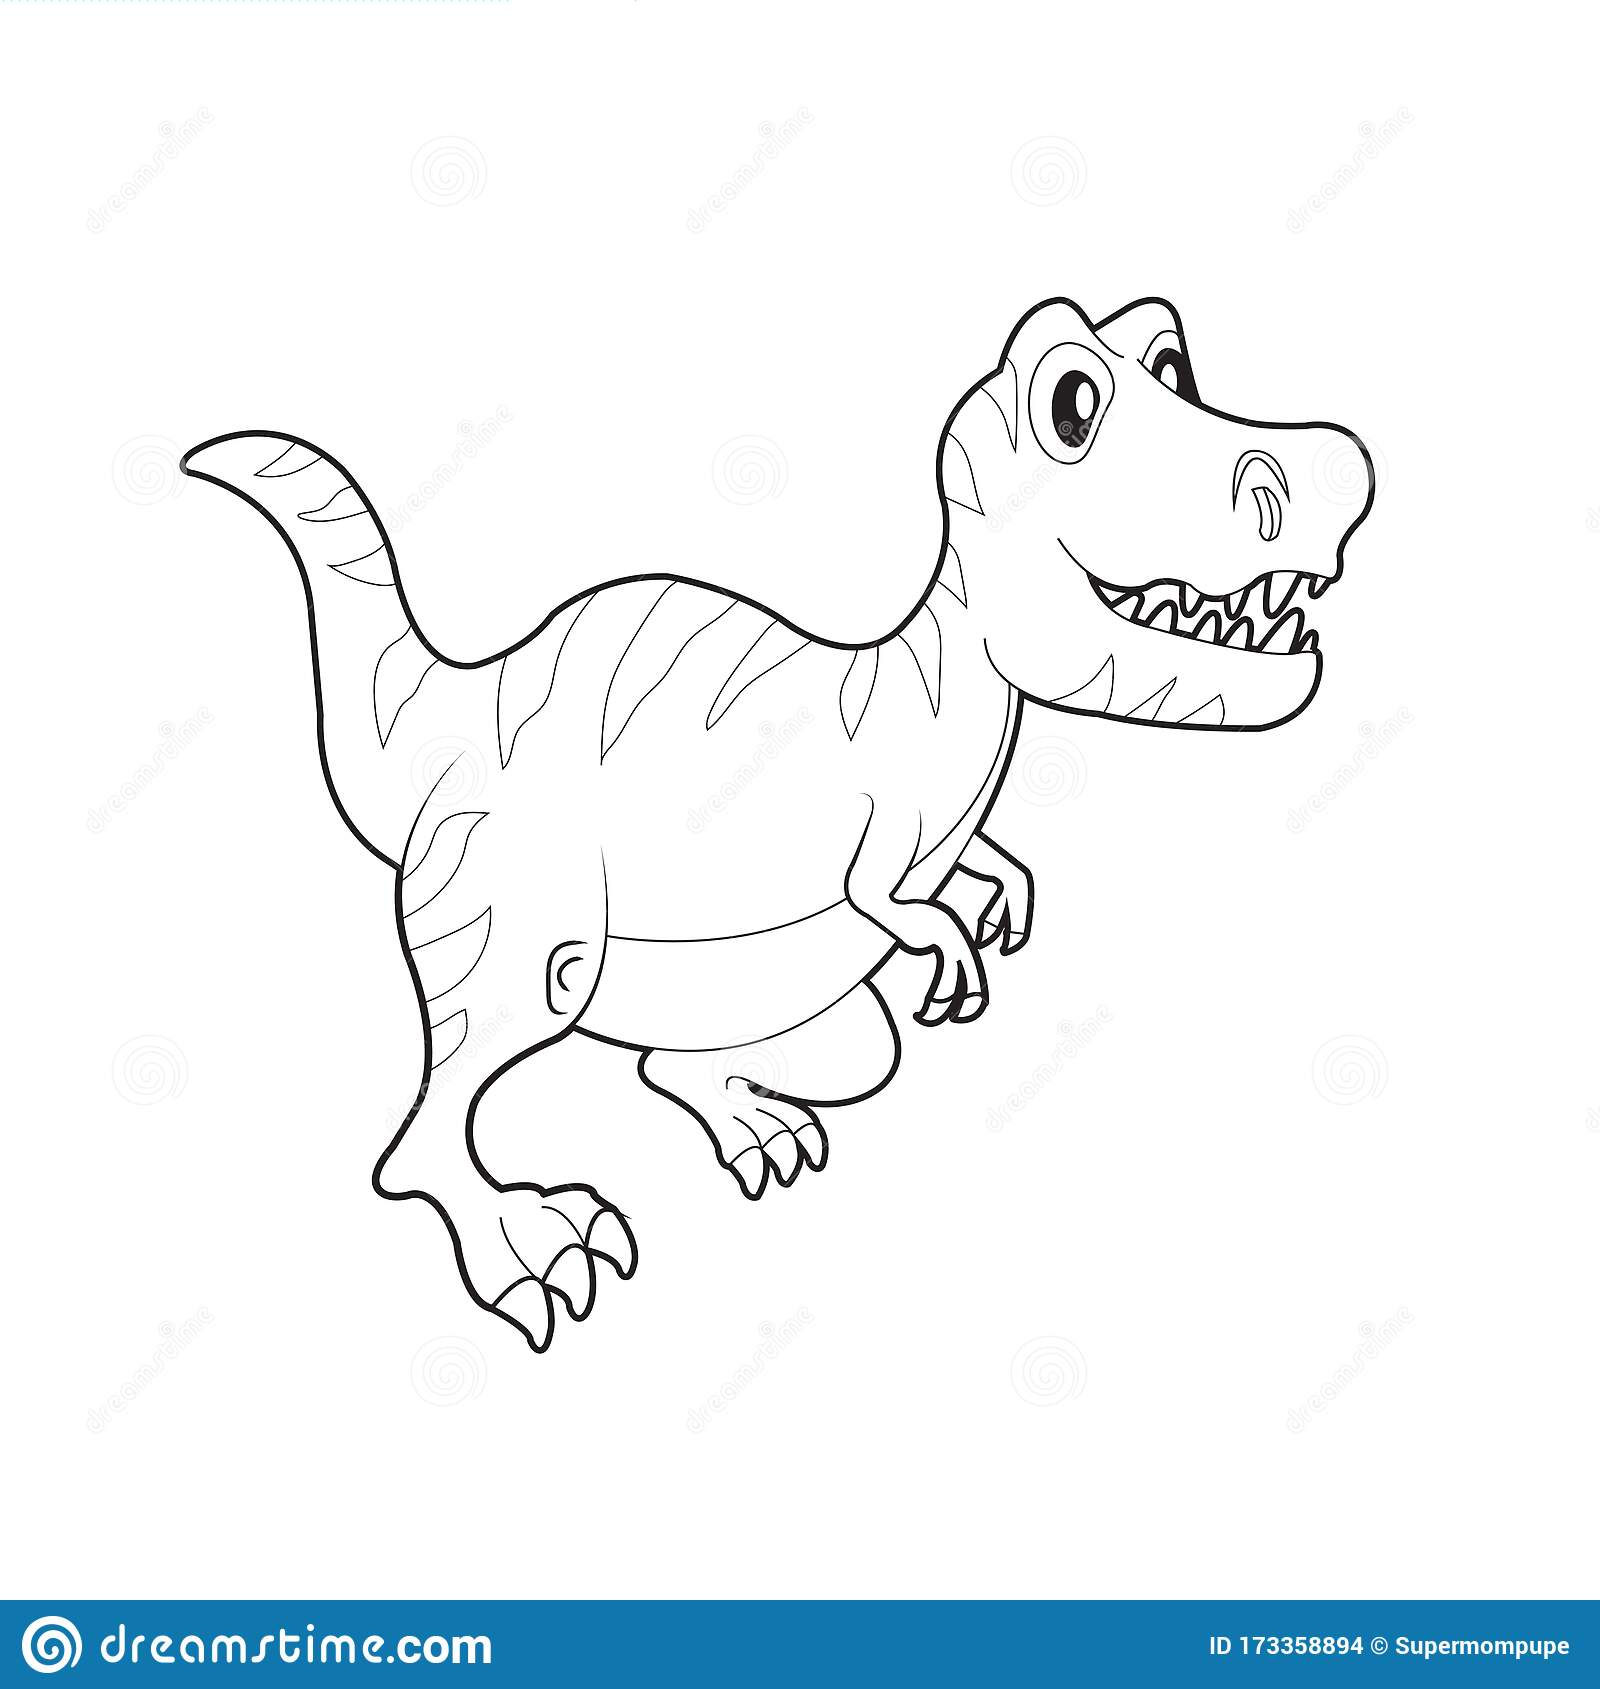 Dinosaurs - coloring pages for kids to print and color | 1689x1600